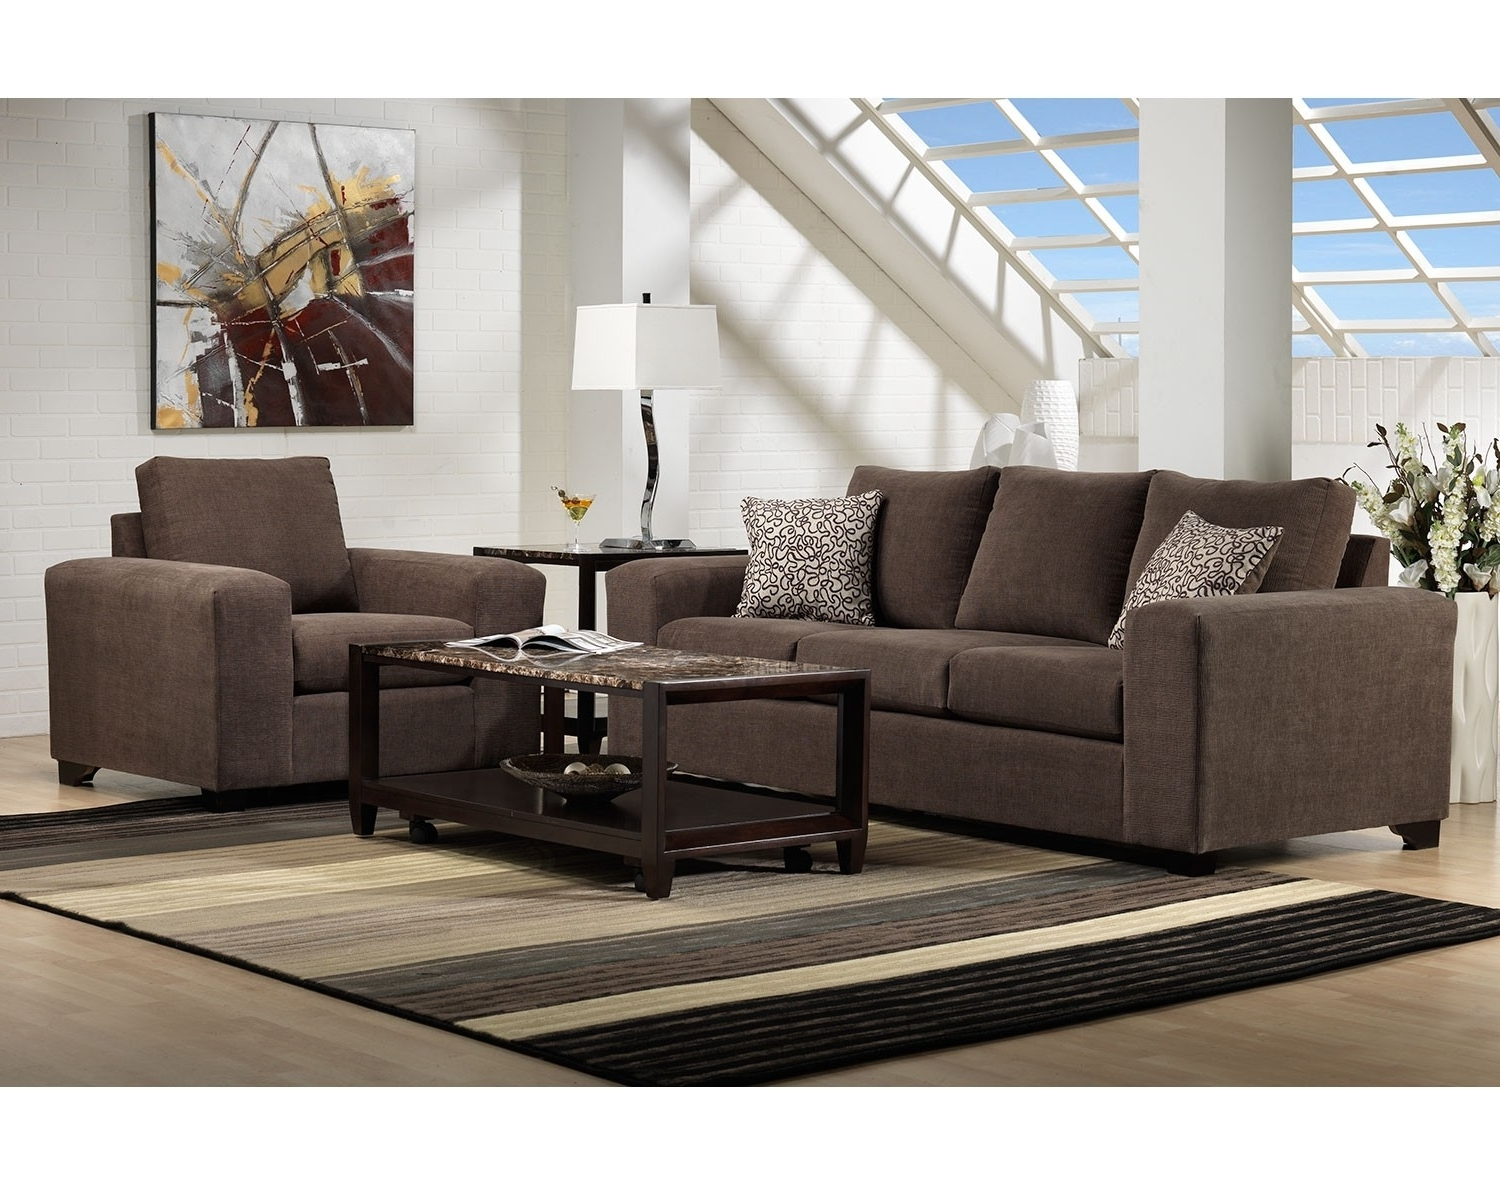 Sectional Sofas At Edmonton With Regard To Most Recent Modern Furniture Edmonton Living Room Collection Leons Loveseat (View 16 of 20)